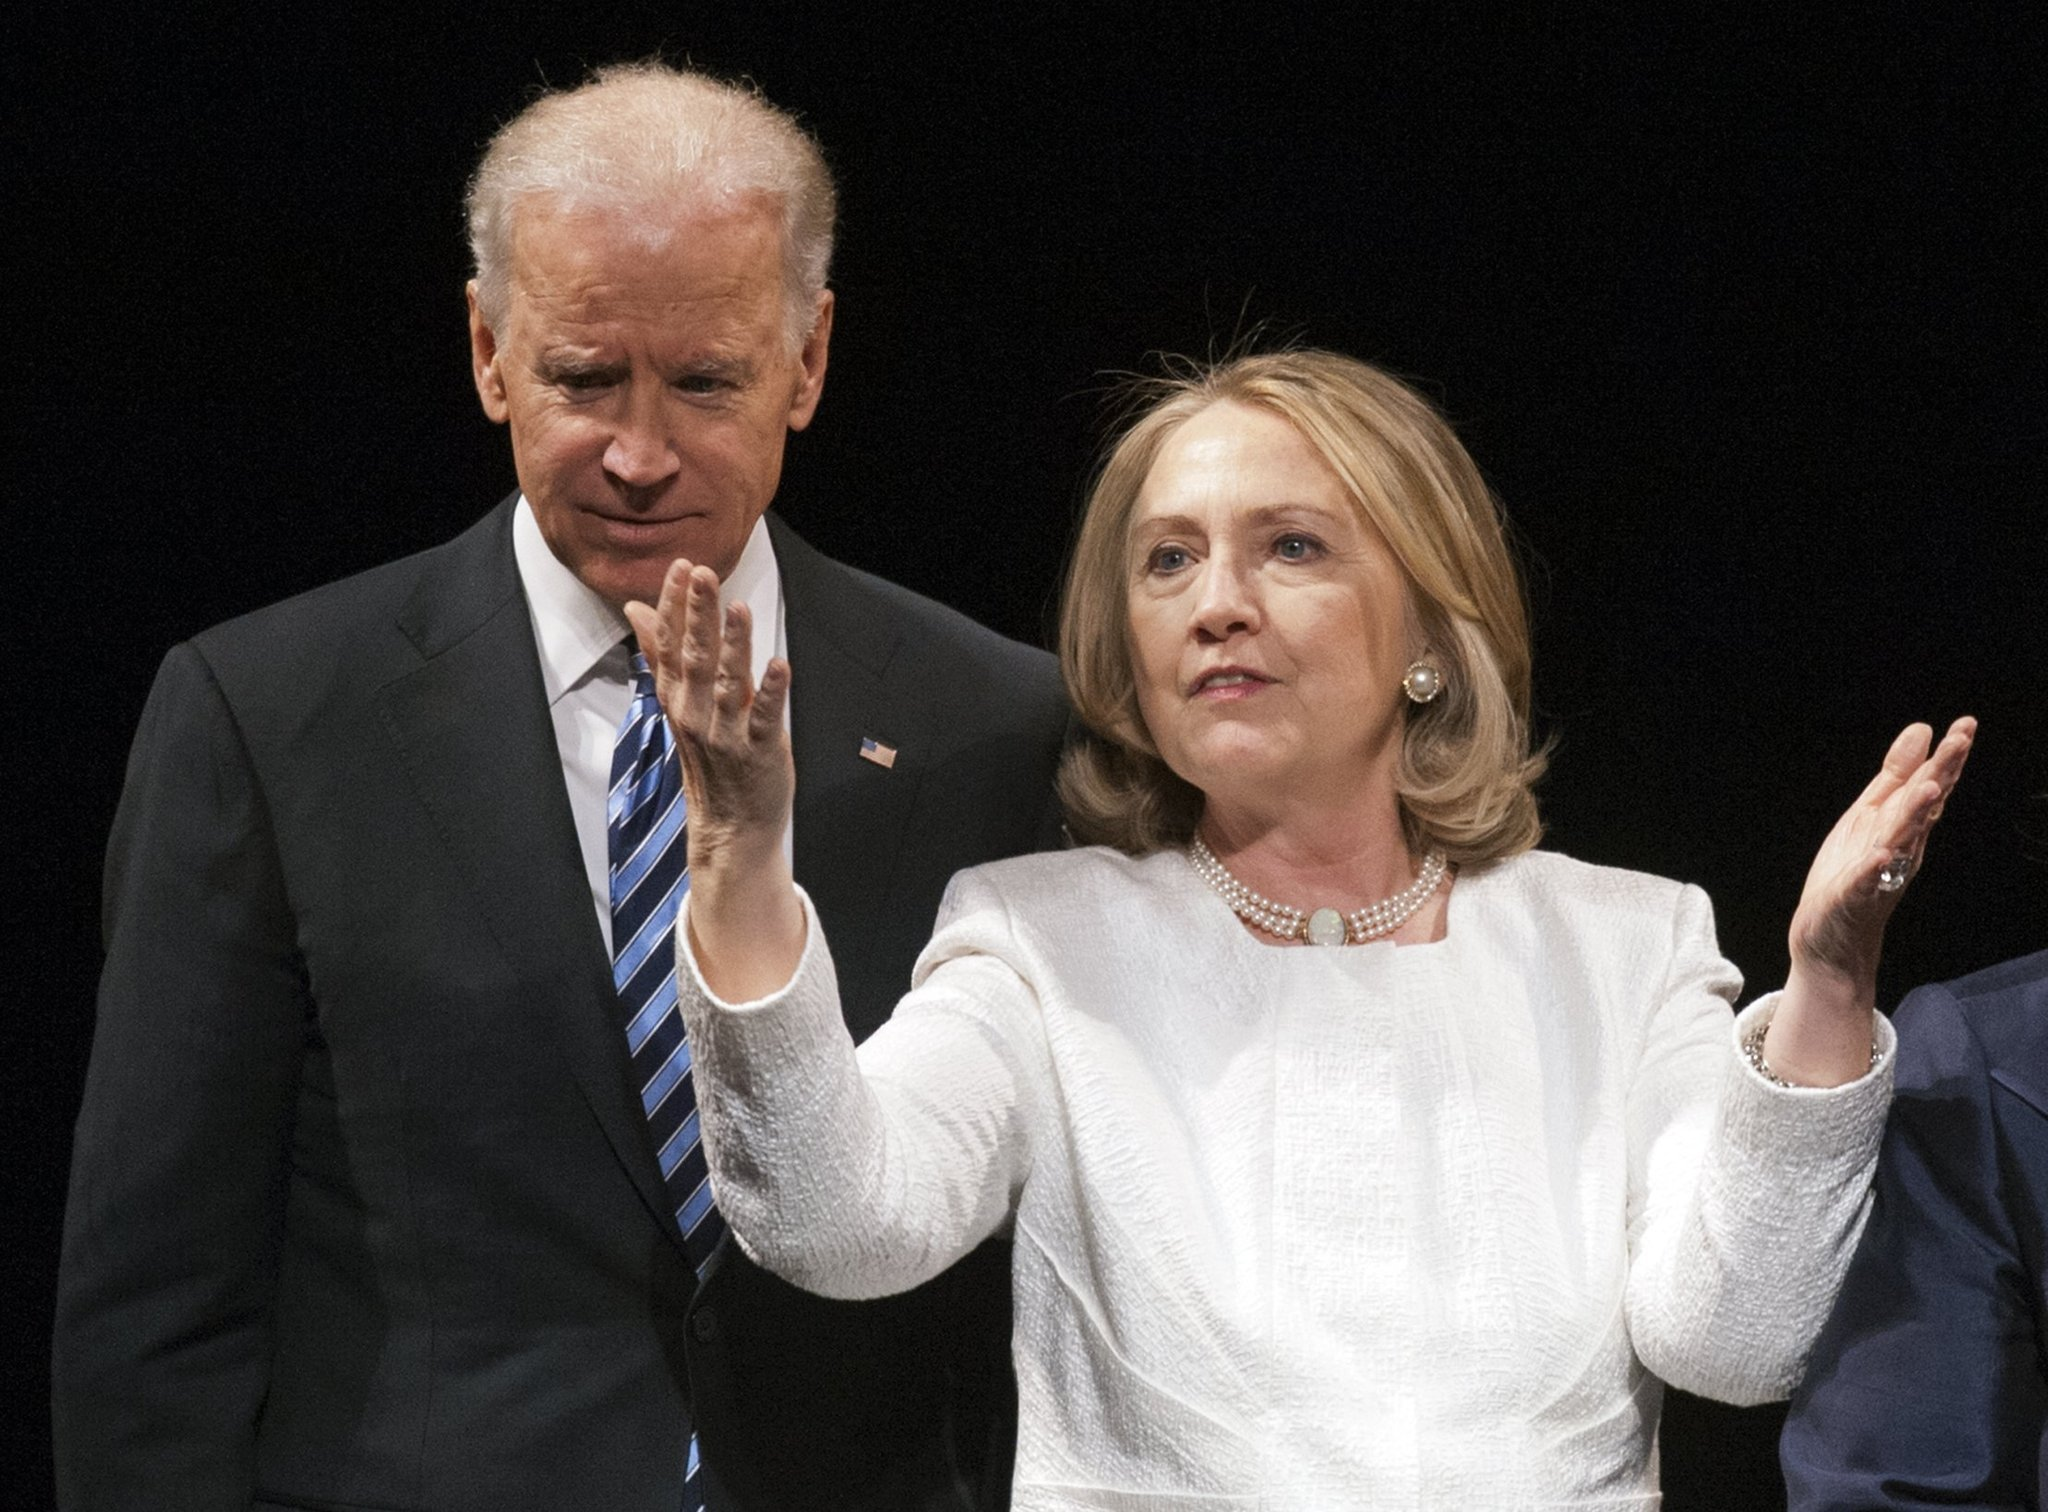 Image result for picture of joe biden and hillary clinton together